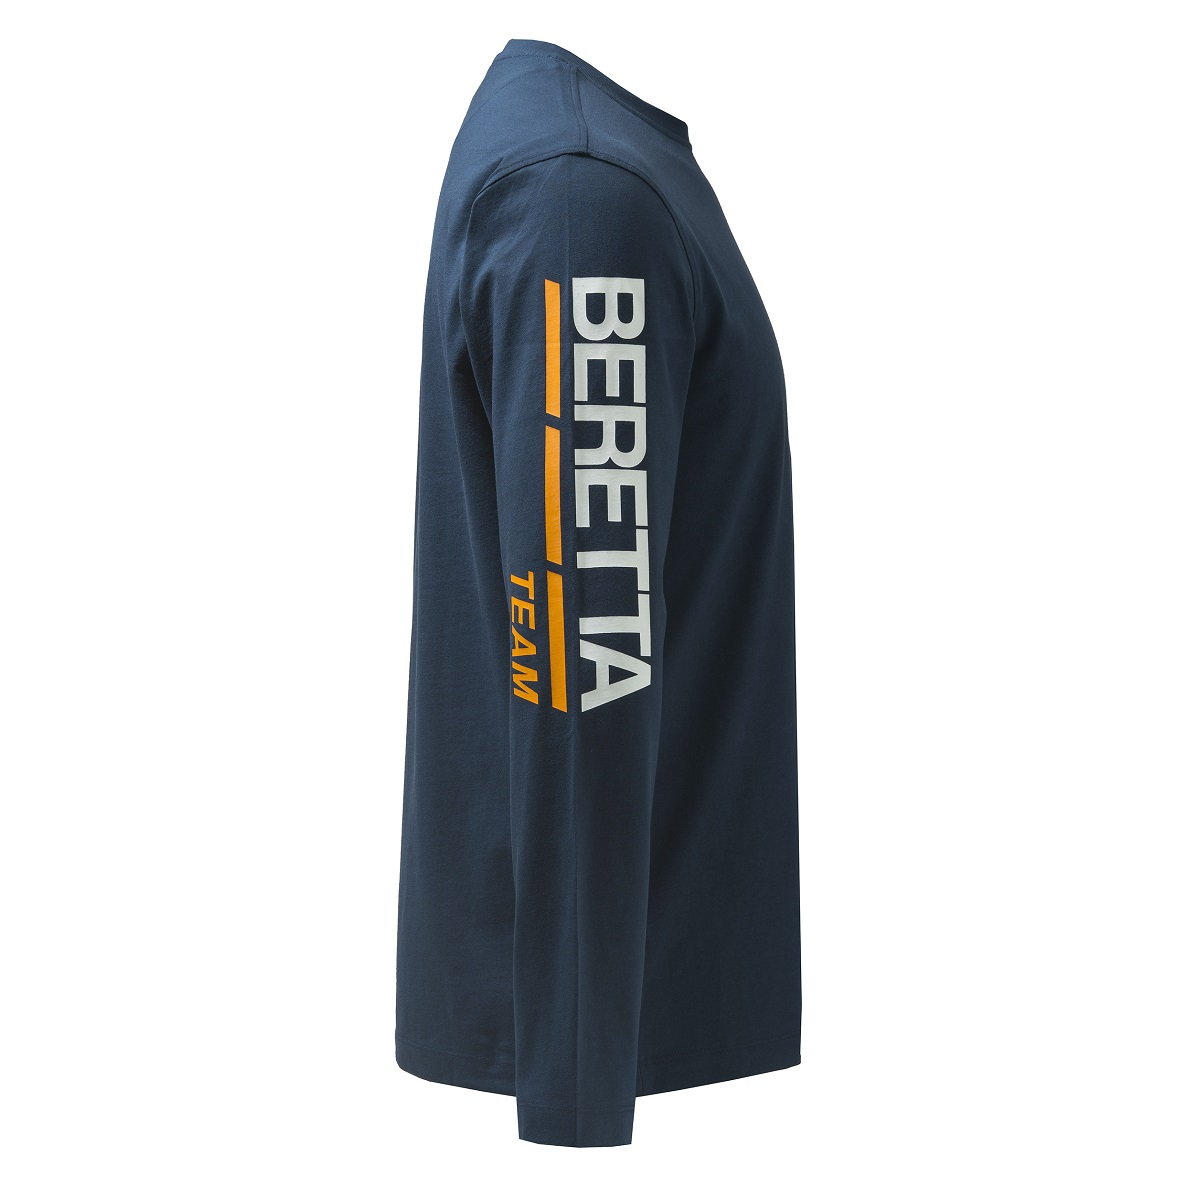 Beretta Team T-Shirt Long Sleeves